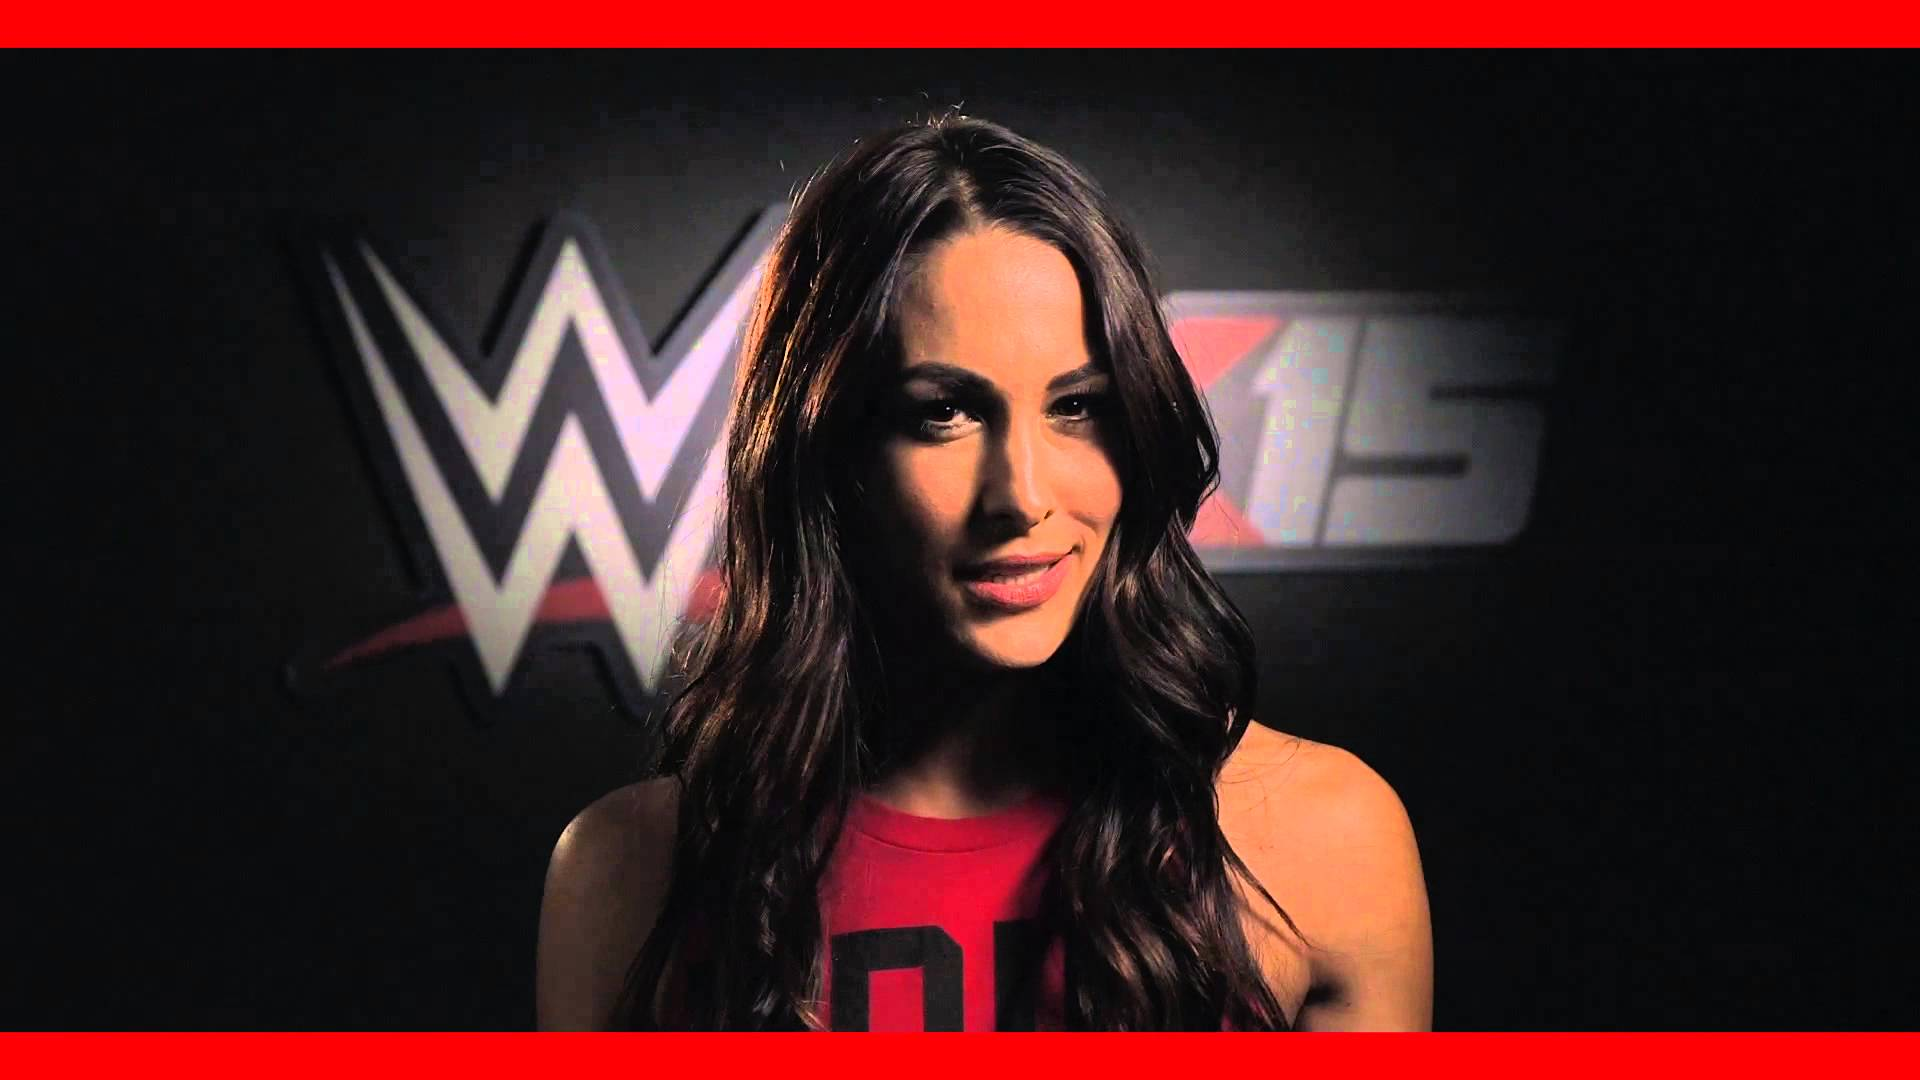 brie bella wwe 2k15 Car Pictures 1920x1080